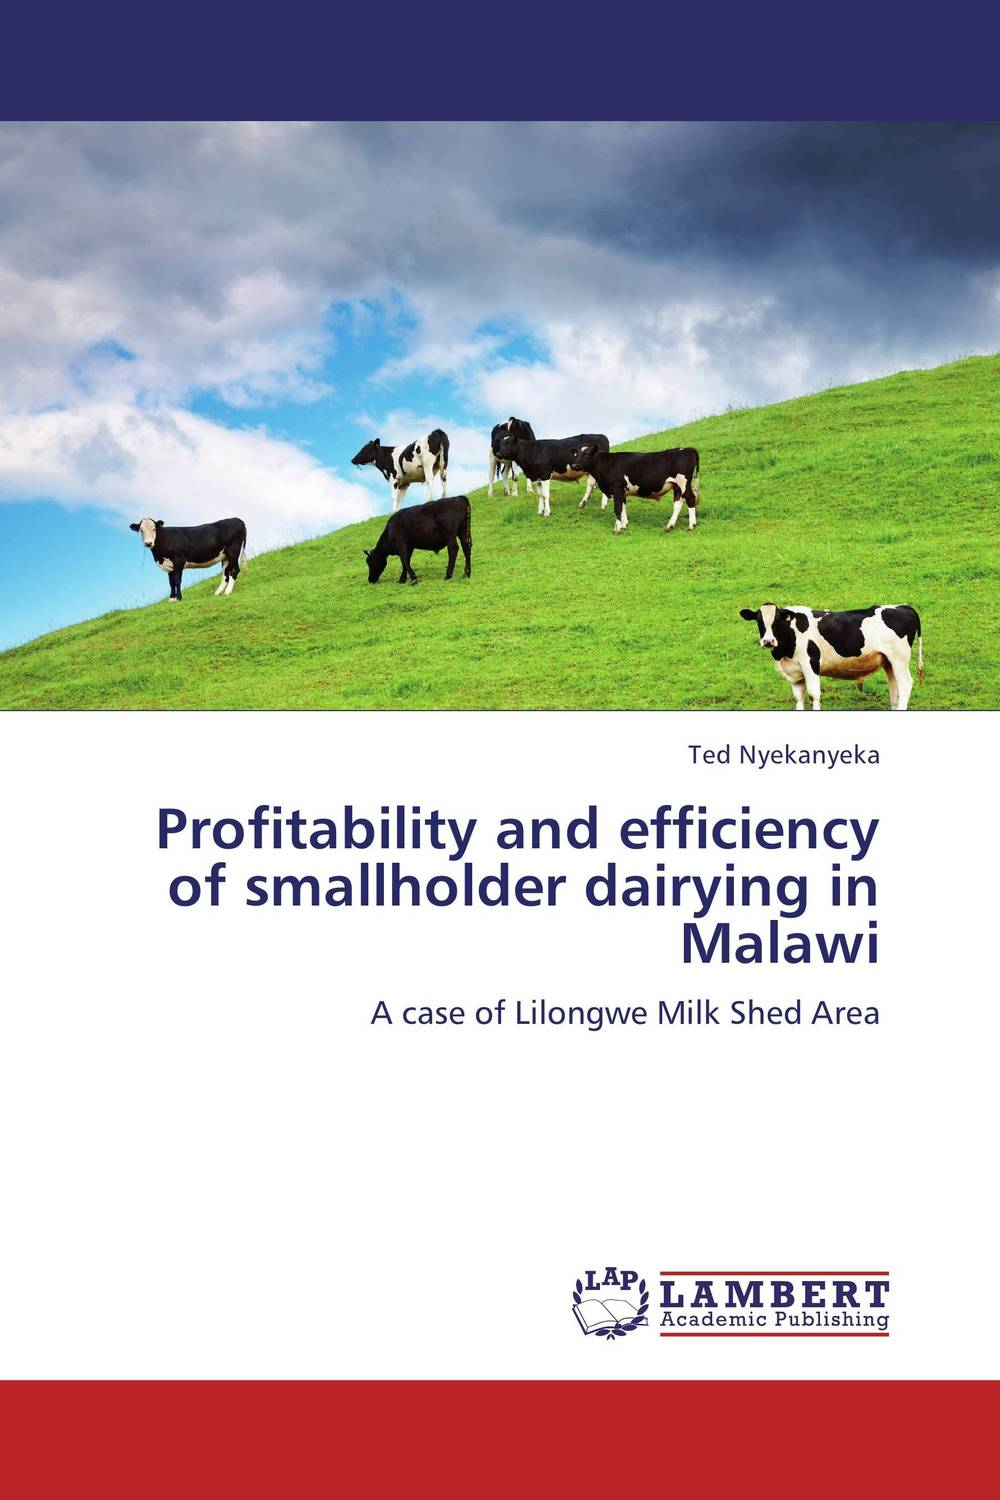 Profitability and efficiency of smallholder dairying in Malawi claw disorders in dairy cows under smallholder zero grazing units